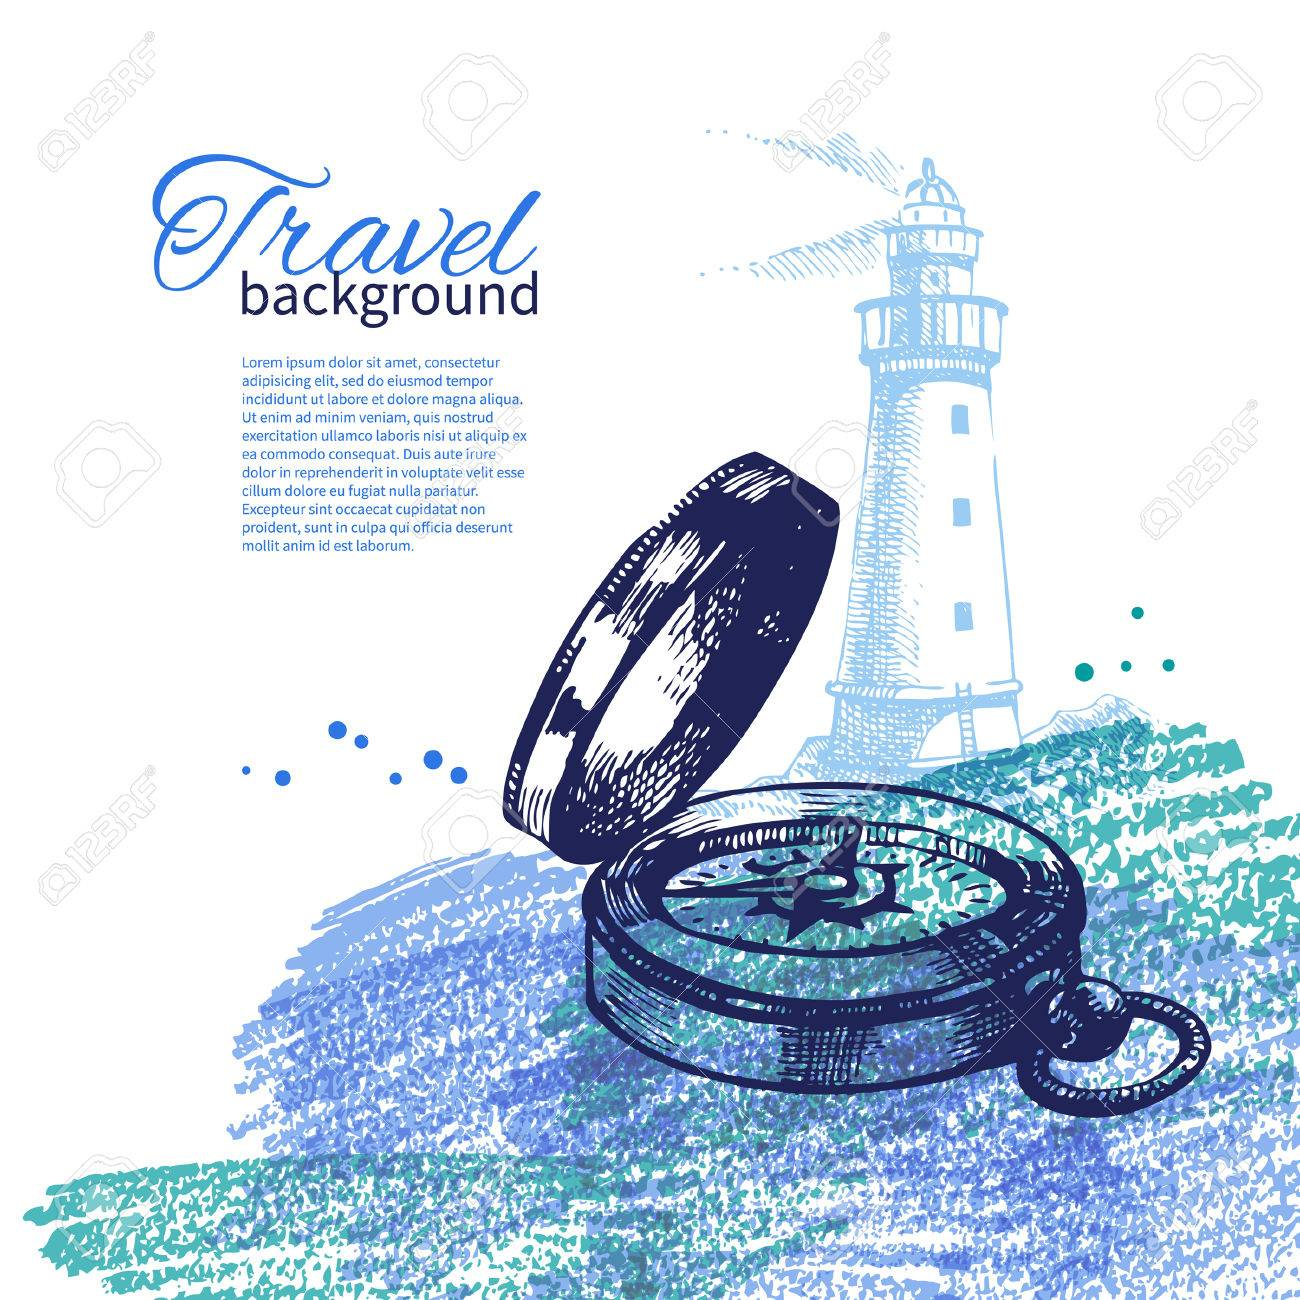 Travel vintage background. Sea nautical design. Hand drawn sketch and watercolor illustrations Stock Vector - 24468675